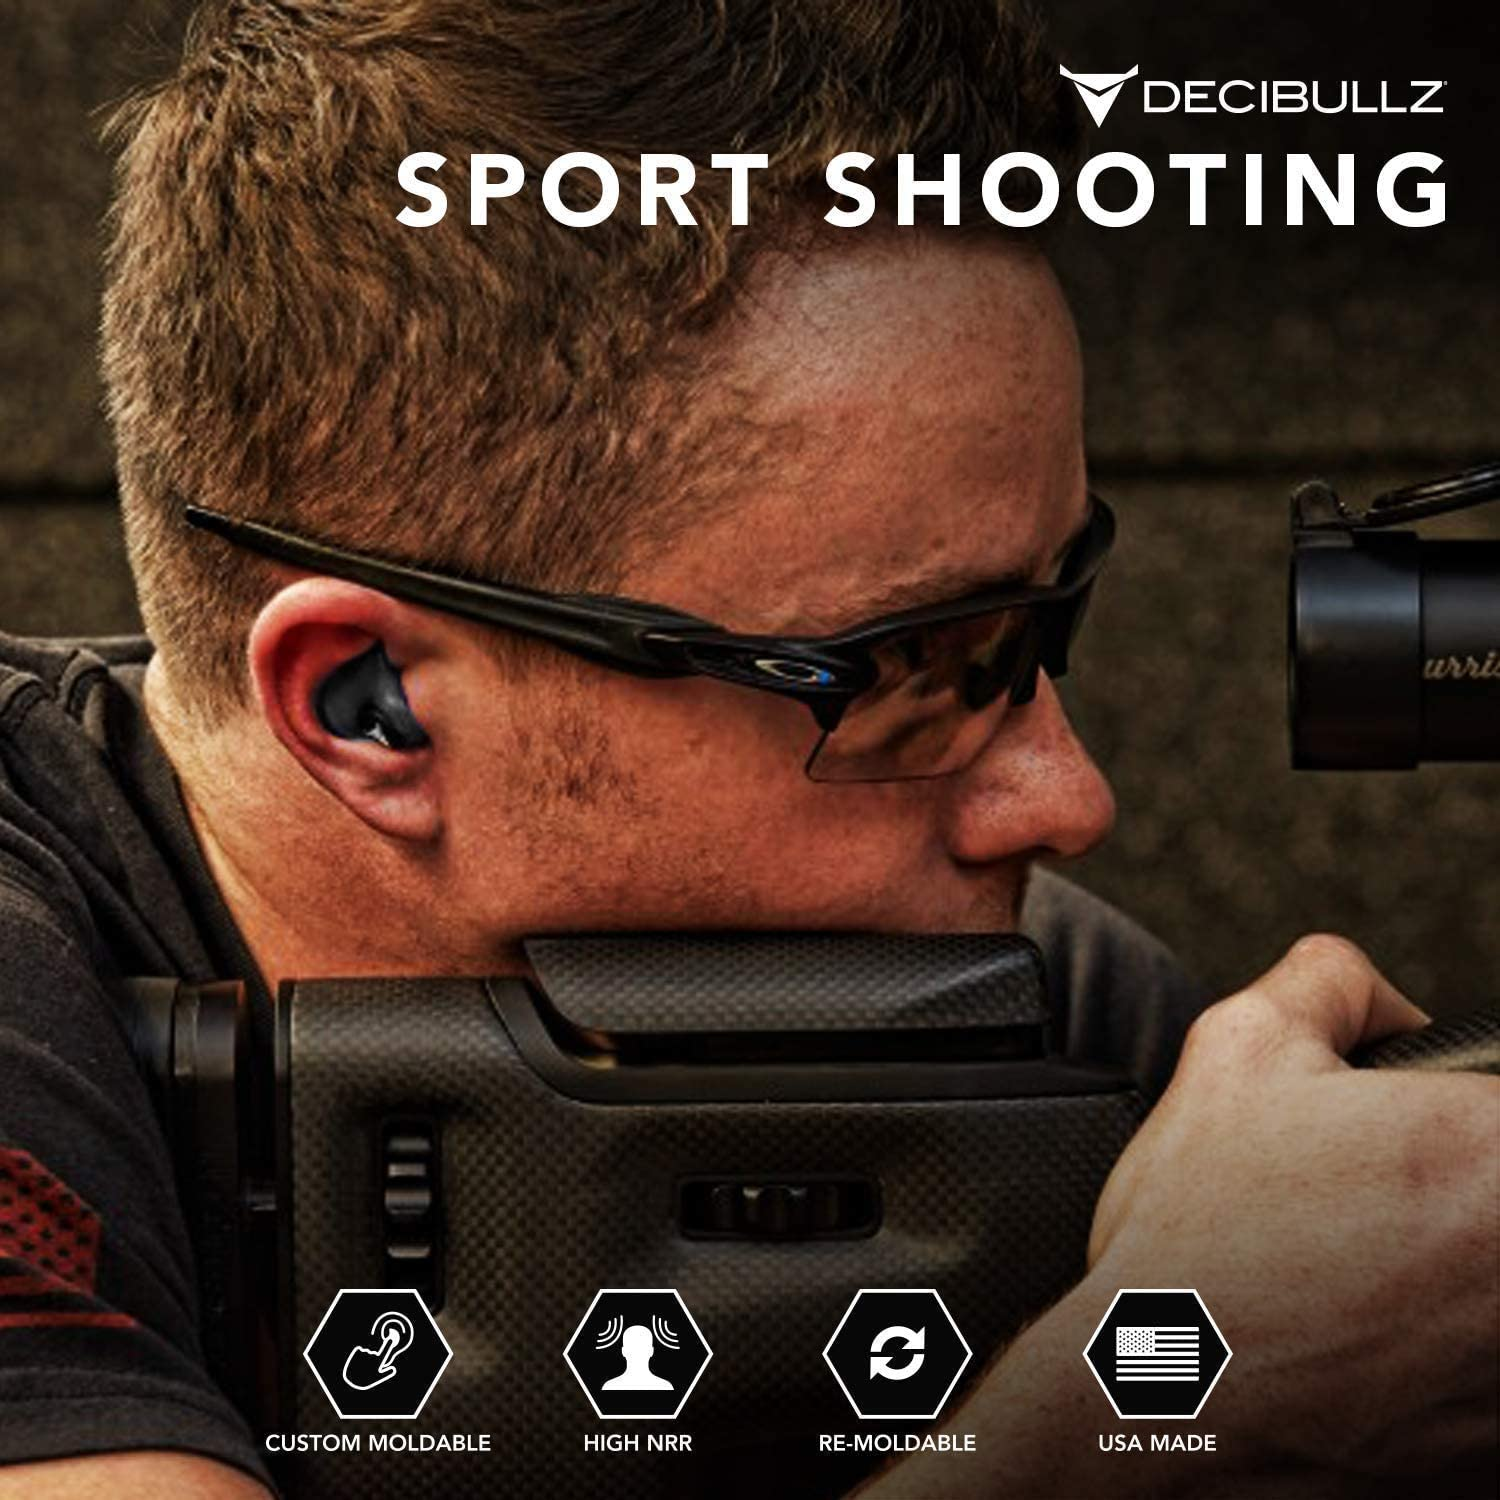 Decibullz – Custom Molded Earplugs, 31dB Highest NRR, Comfortable Hearing Protection for Shooting, Travel, Swimming, Work and Concerts